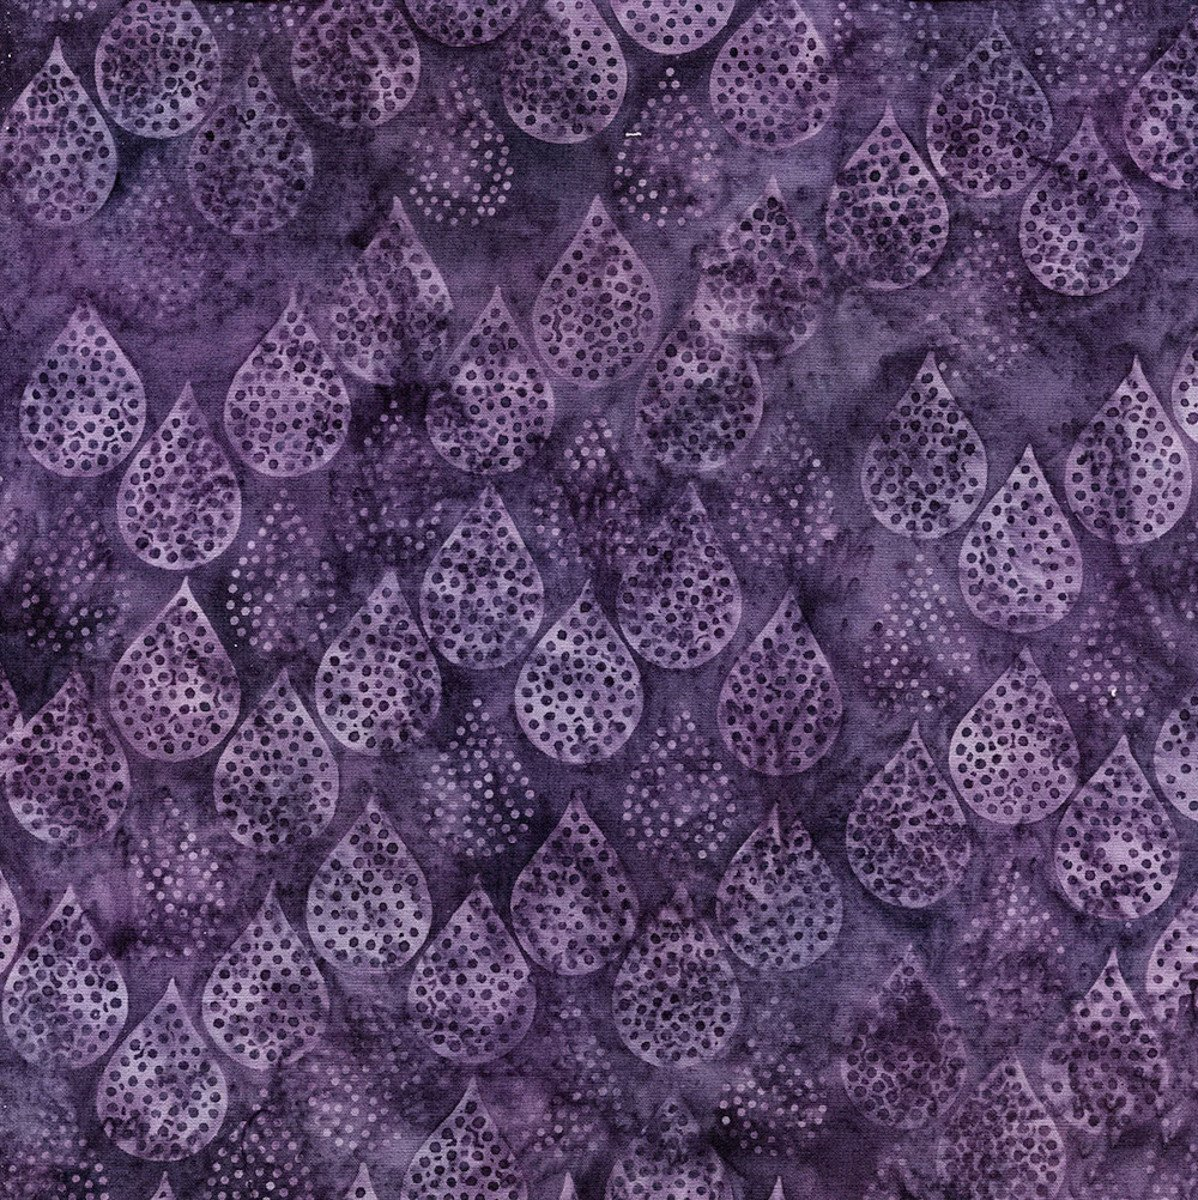 Island Batik - Rain Dots - Grape - 111817450